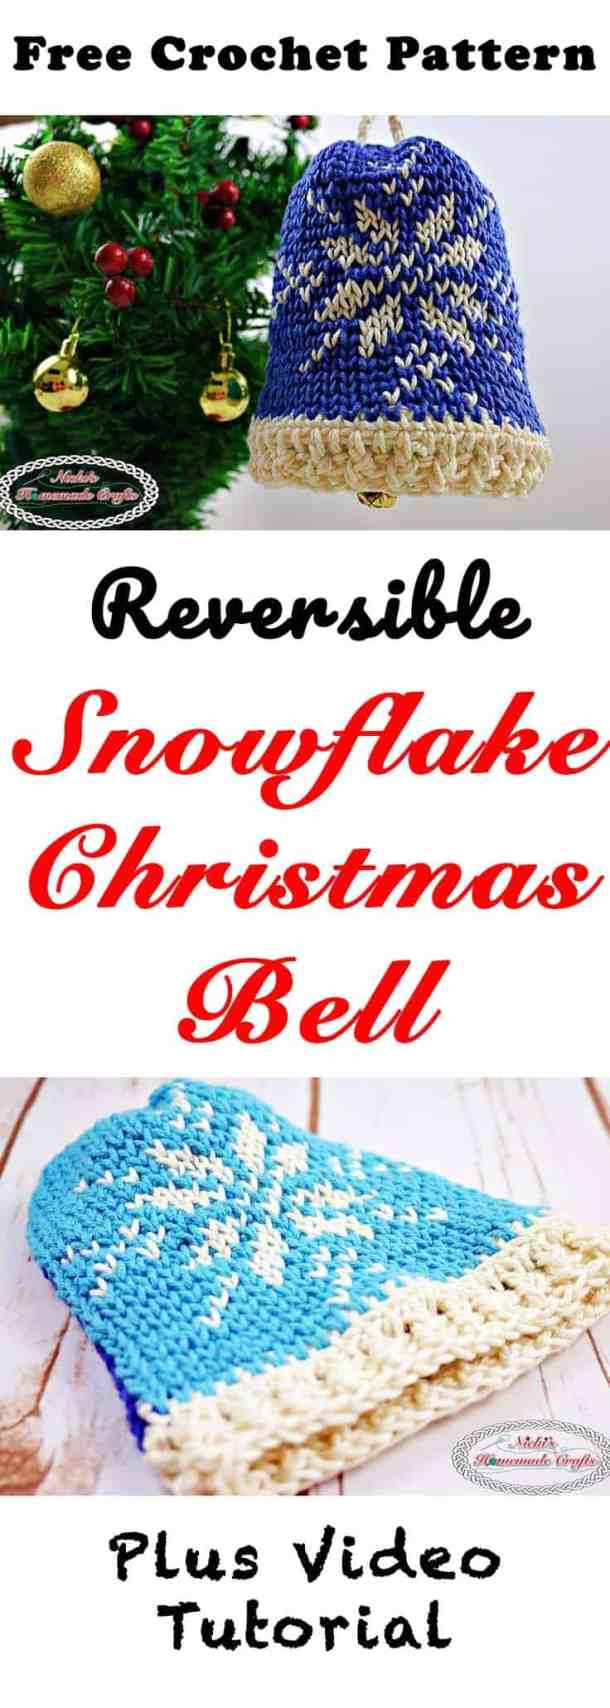 Snowflake Christmas Bell Free Crochet Pattern Nickis Homemade